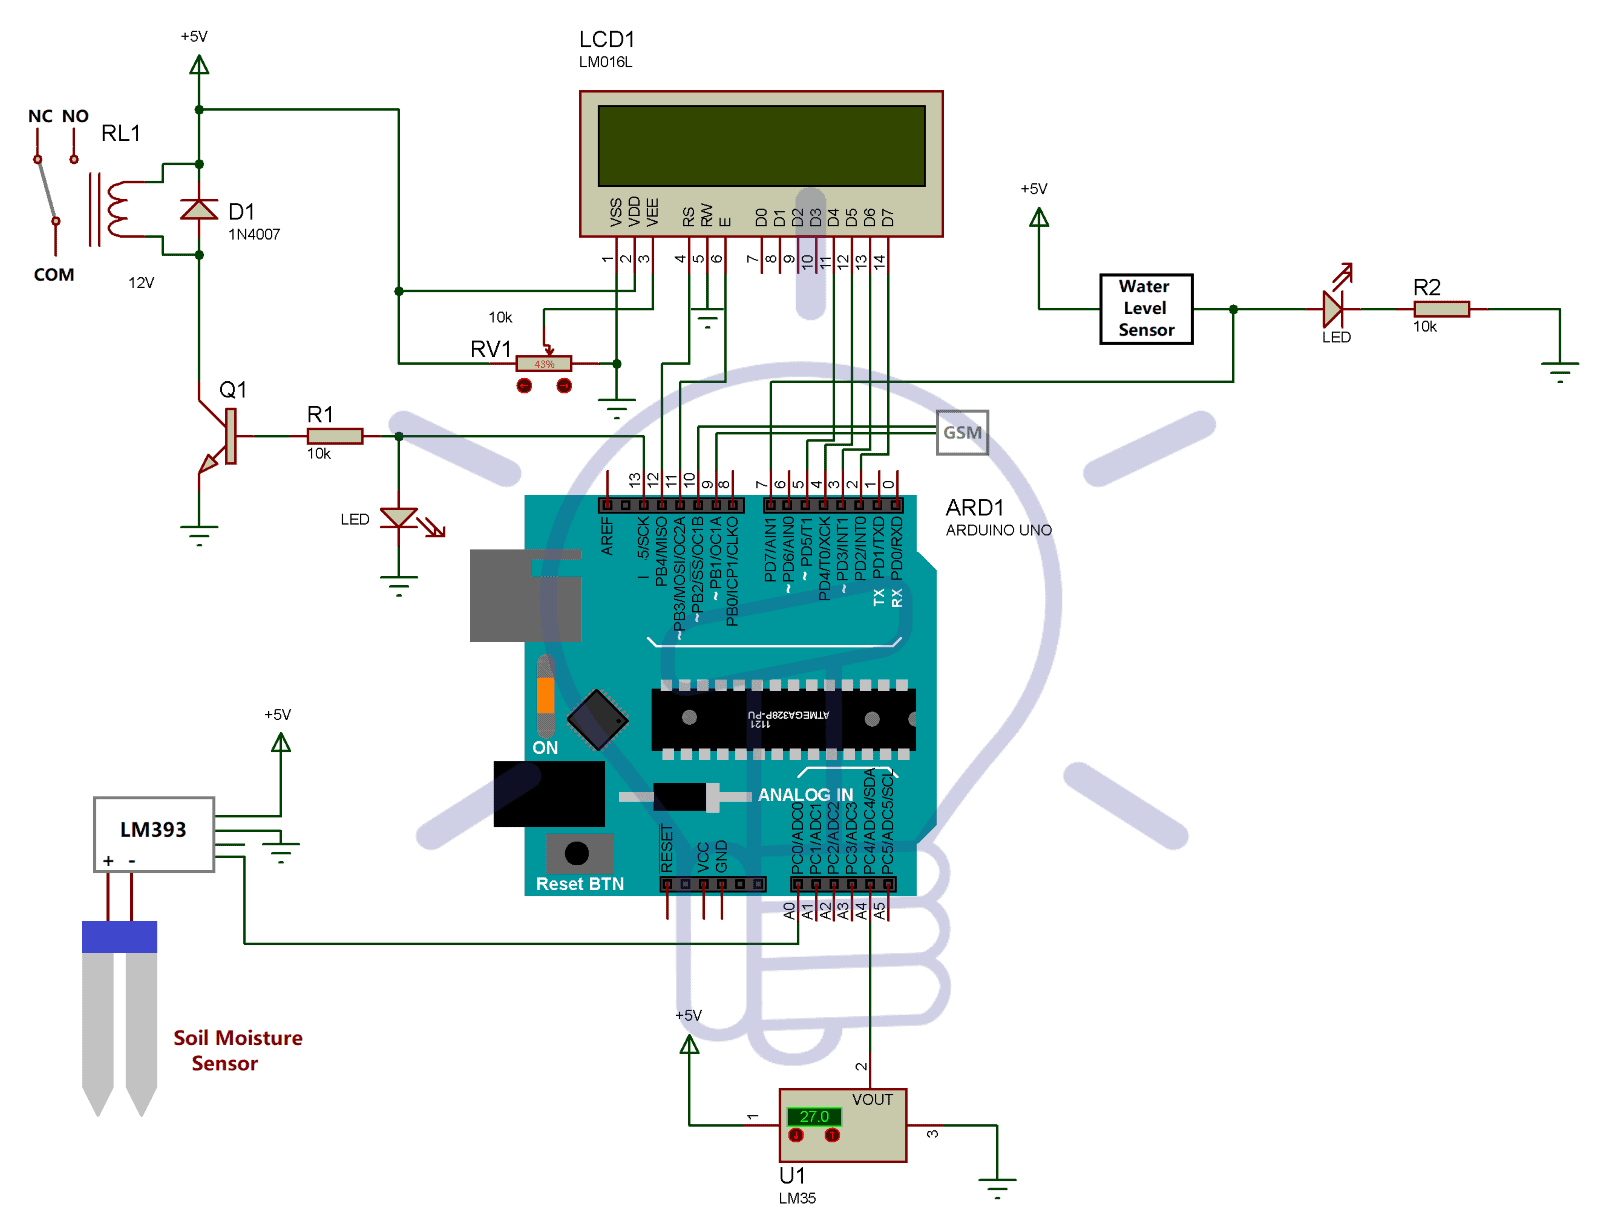 Circuit Diagram of Smart Irrigartion System